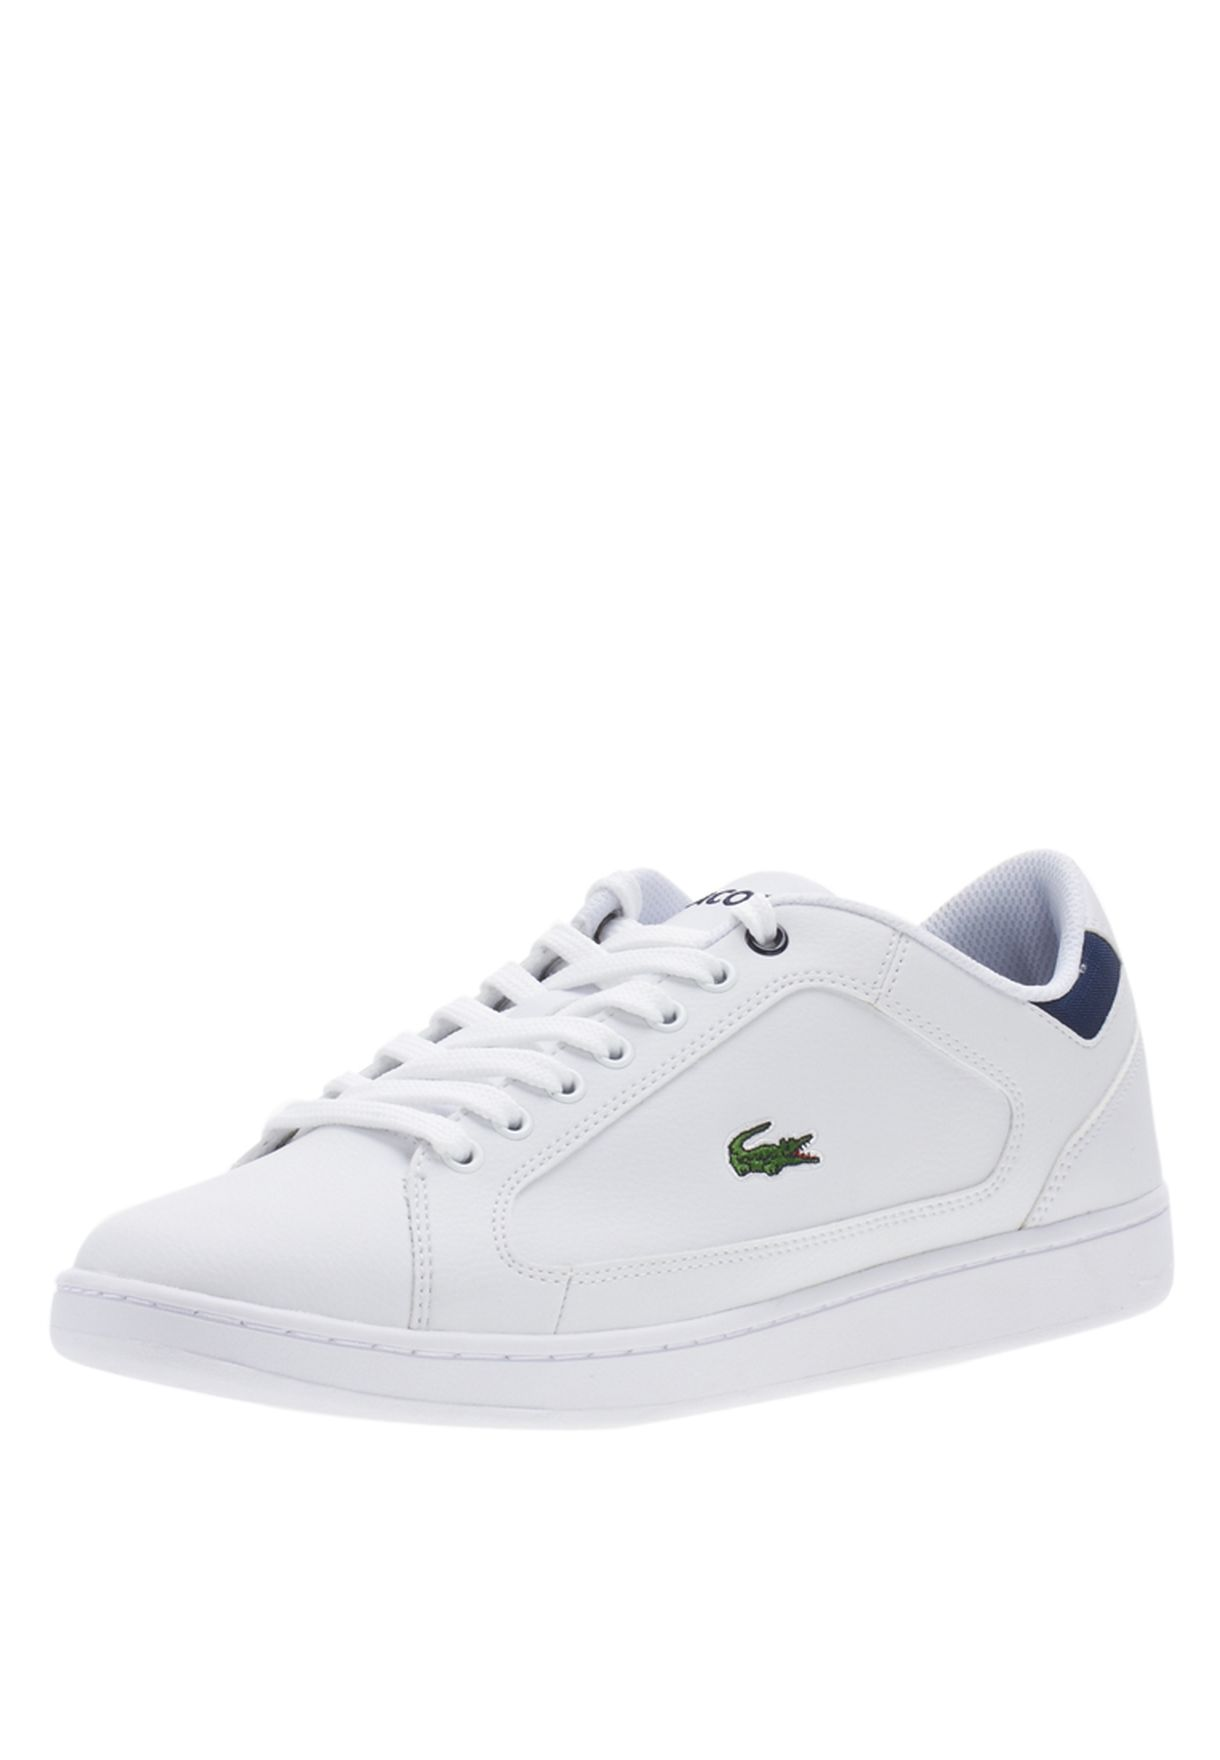 3ee444a50 Shop Lacoste white Nistos CI Spm Sneakers 24SPM1262-X96 for Men in ...